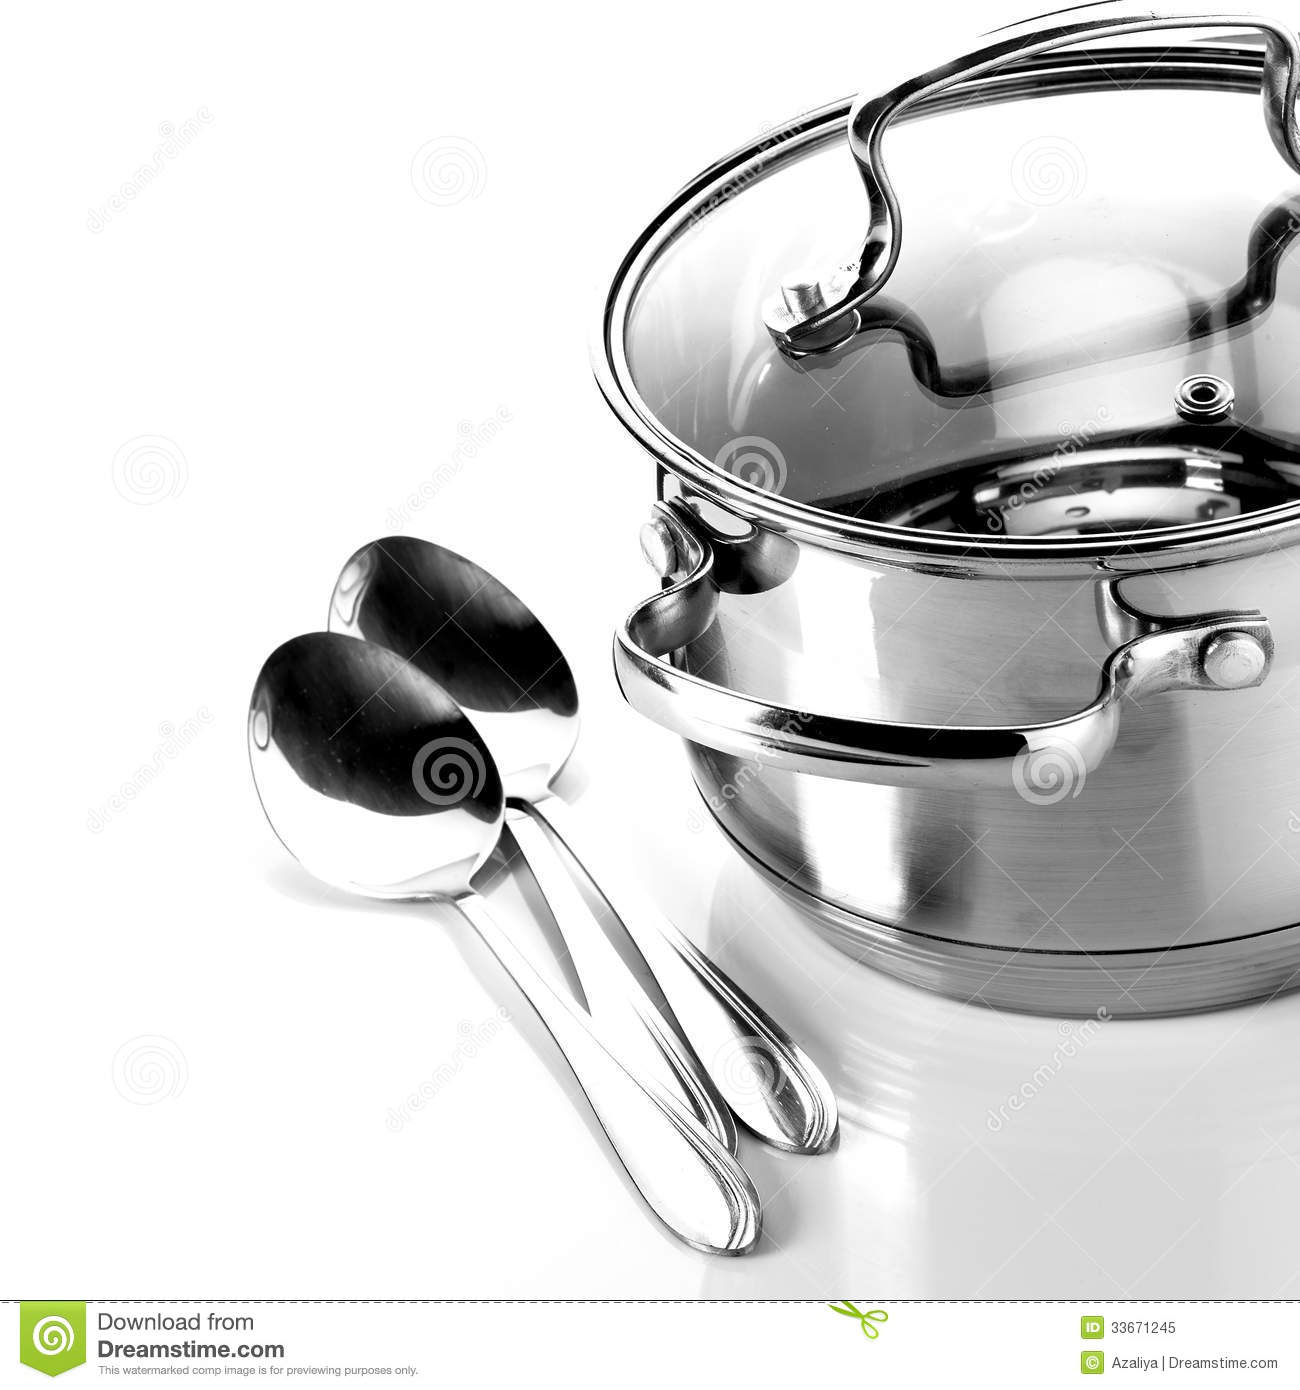 Dream Kitchen Utensils: Pan And Spoons Royalty Free Stock Photo